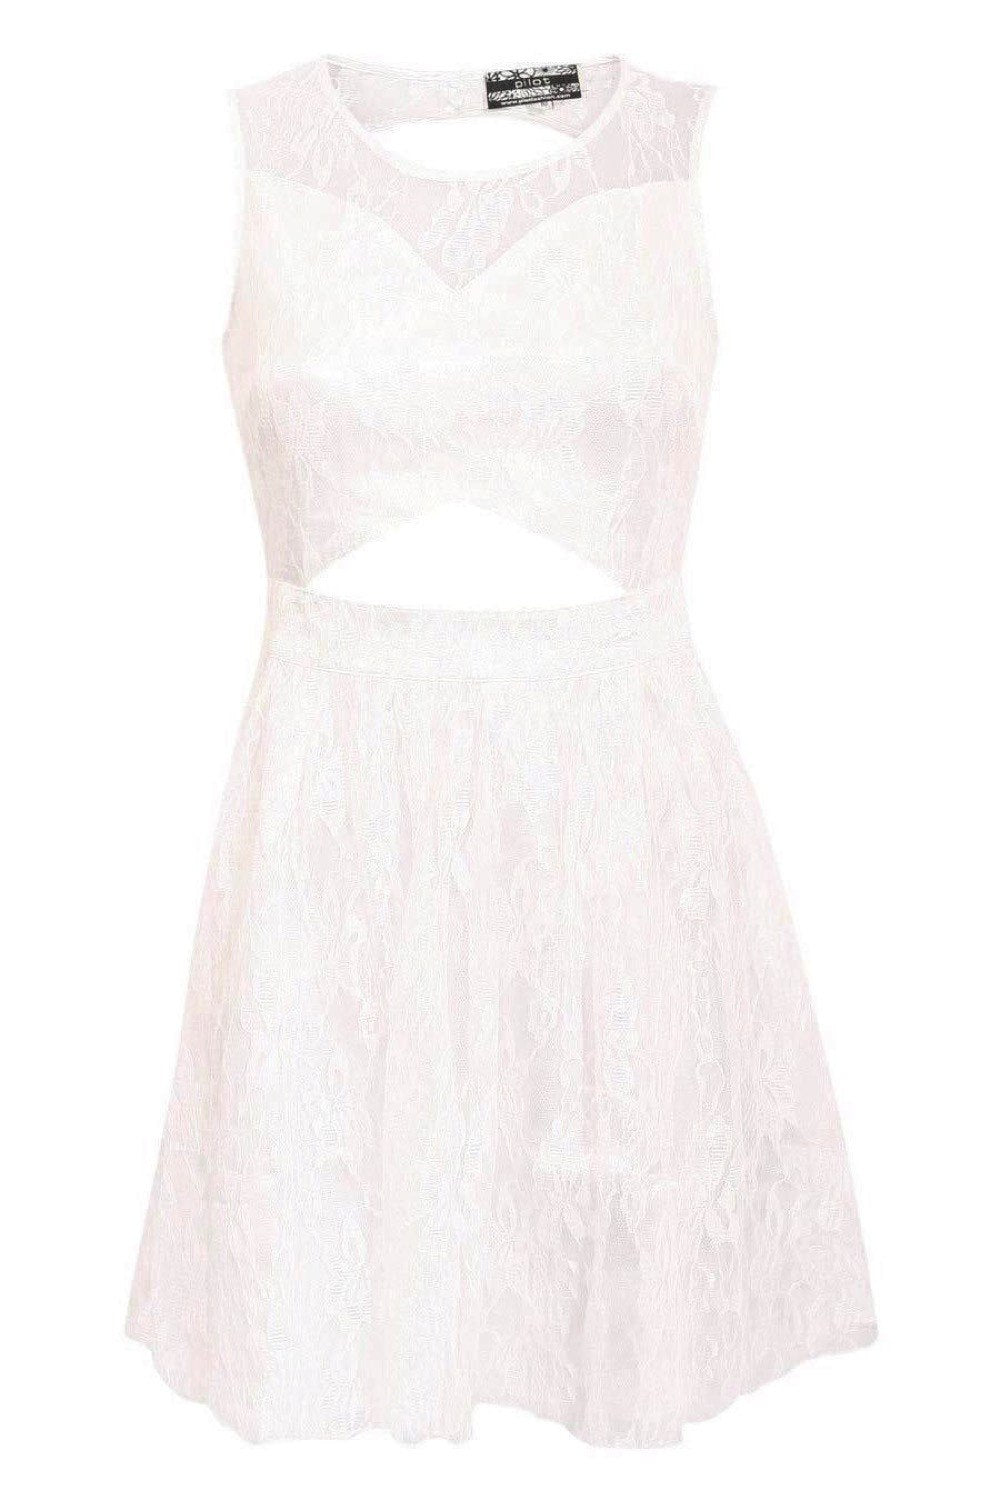 Lace Cut Out Front Skater Dress in White FRONT